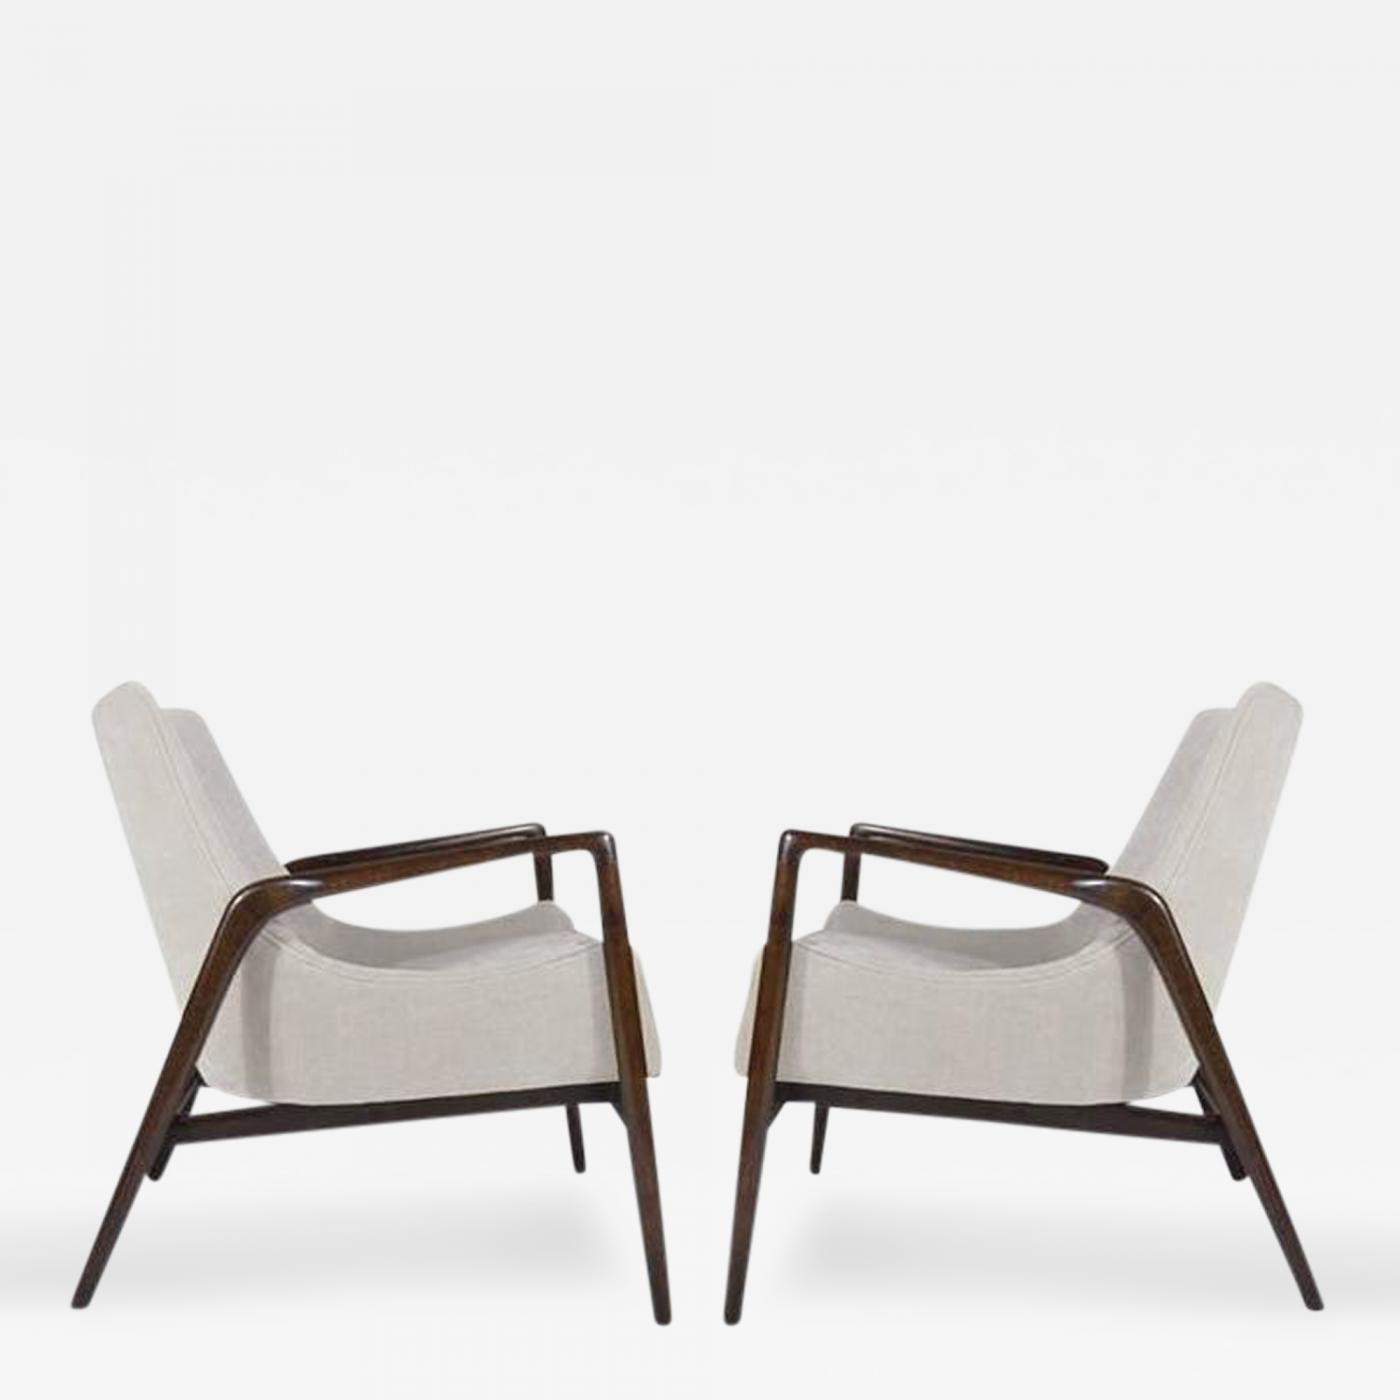 This sculptural pair of lounge chairs by ib kofod larsen is no longer - Listings Furniture Seating Armchairs Ib Kofod Larsen Pair Of Easy Lounge